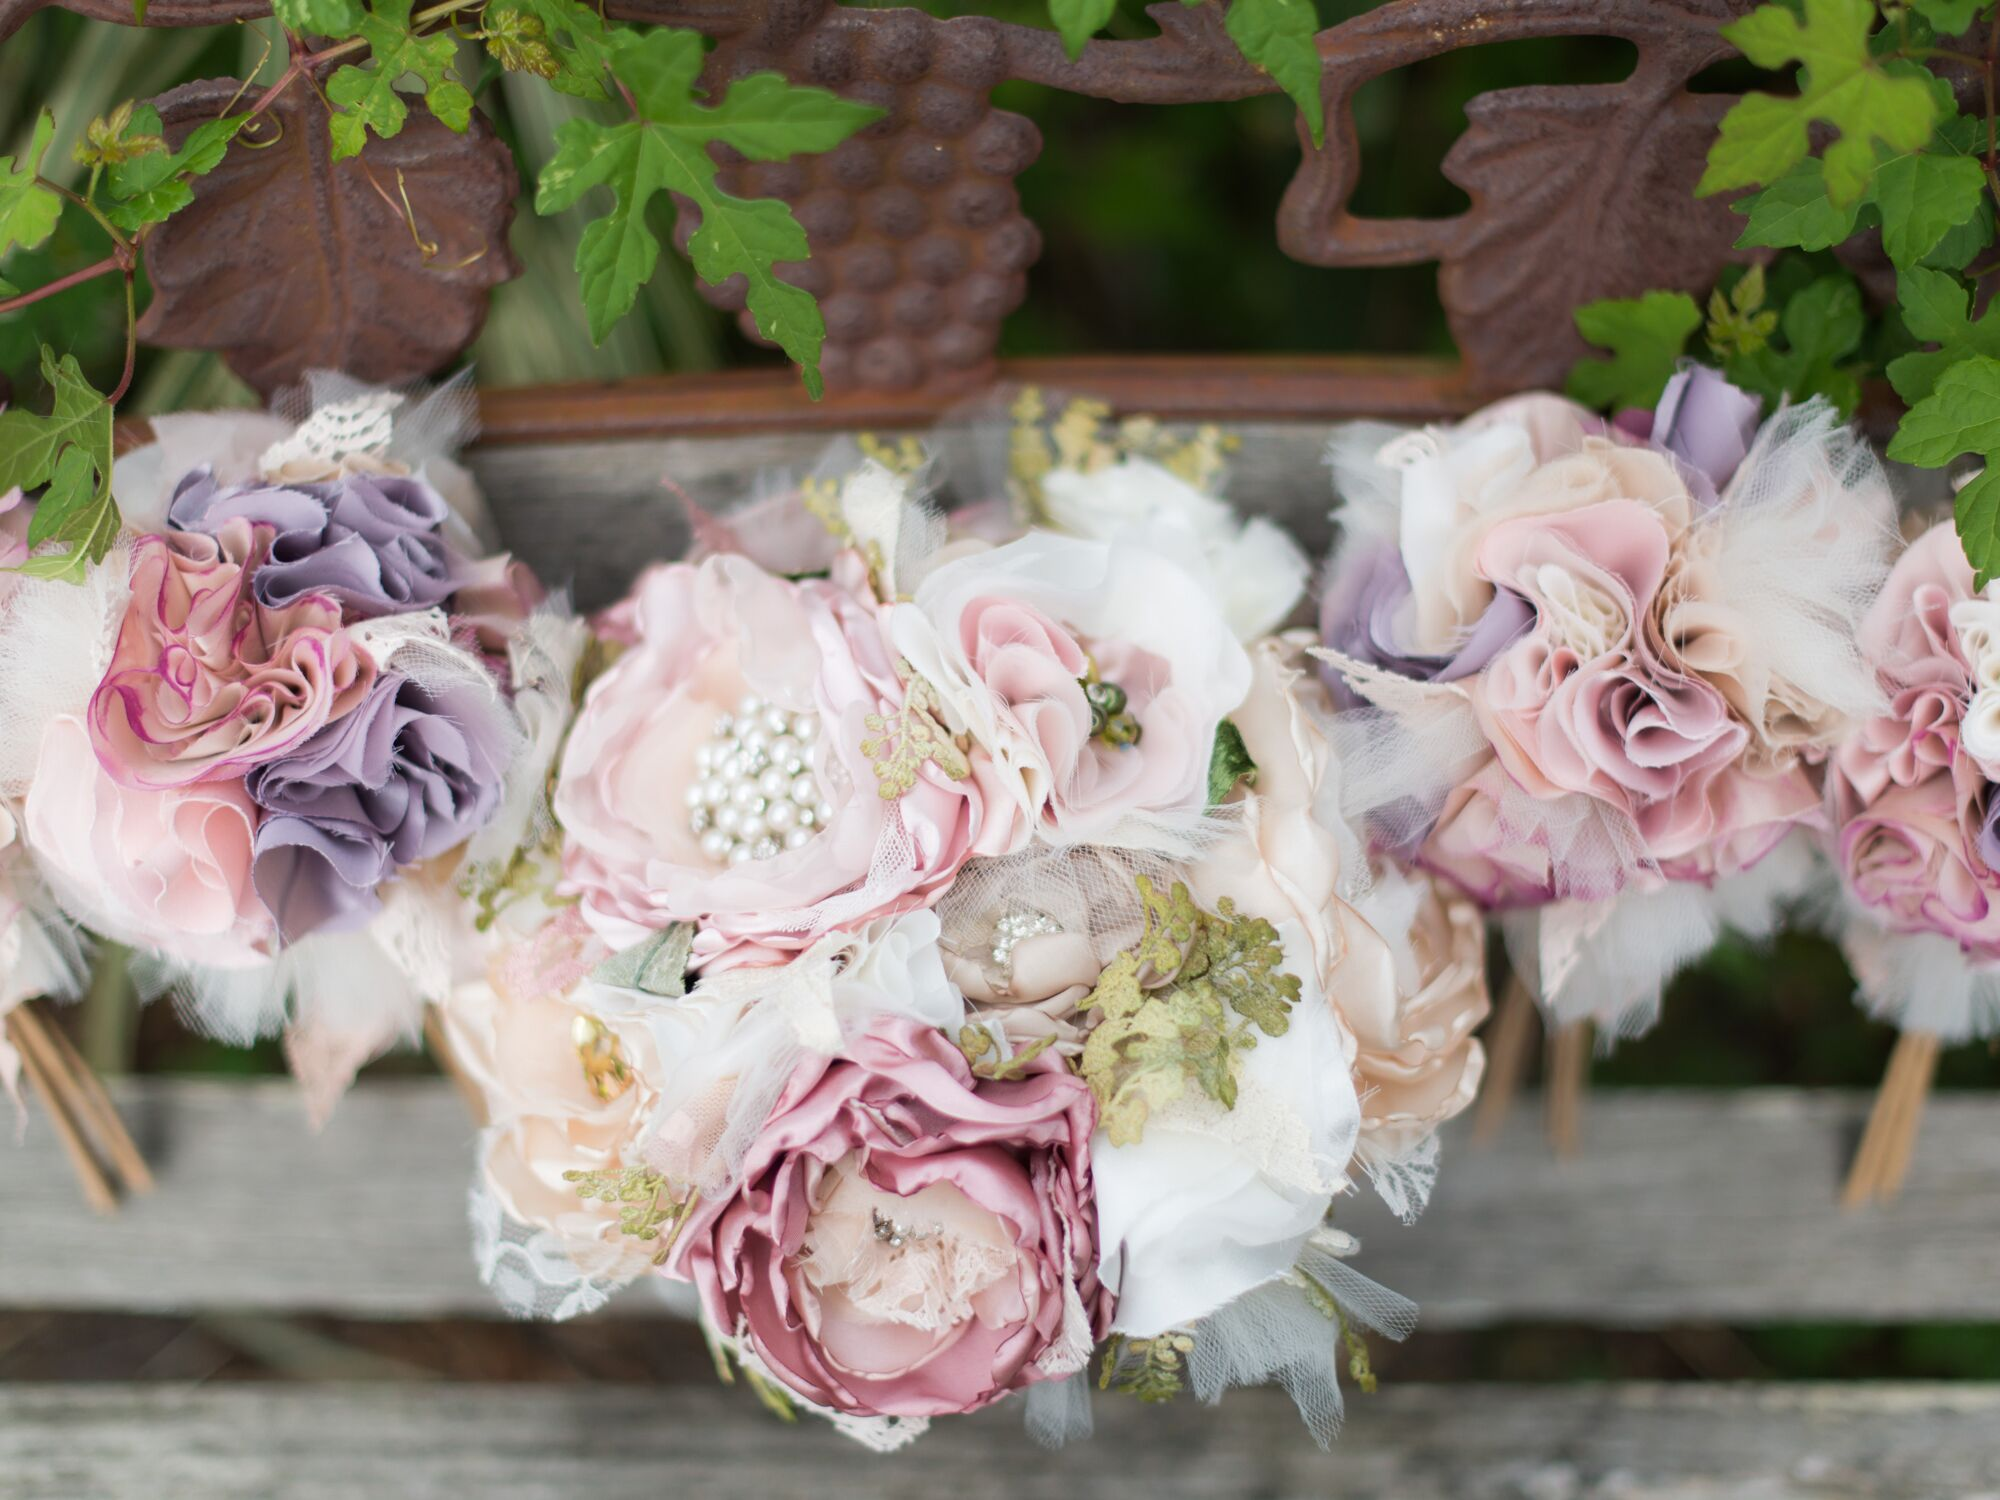 Silk Wedding Flowers Vs Fresh Silk Wedding Flower Benefits